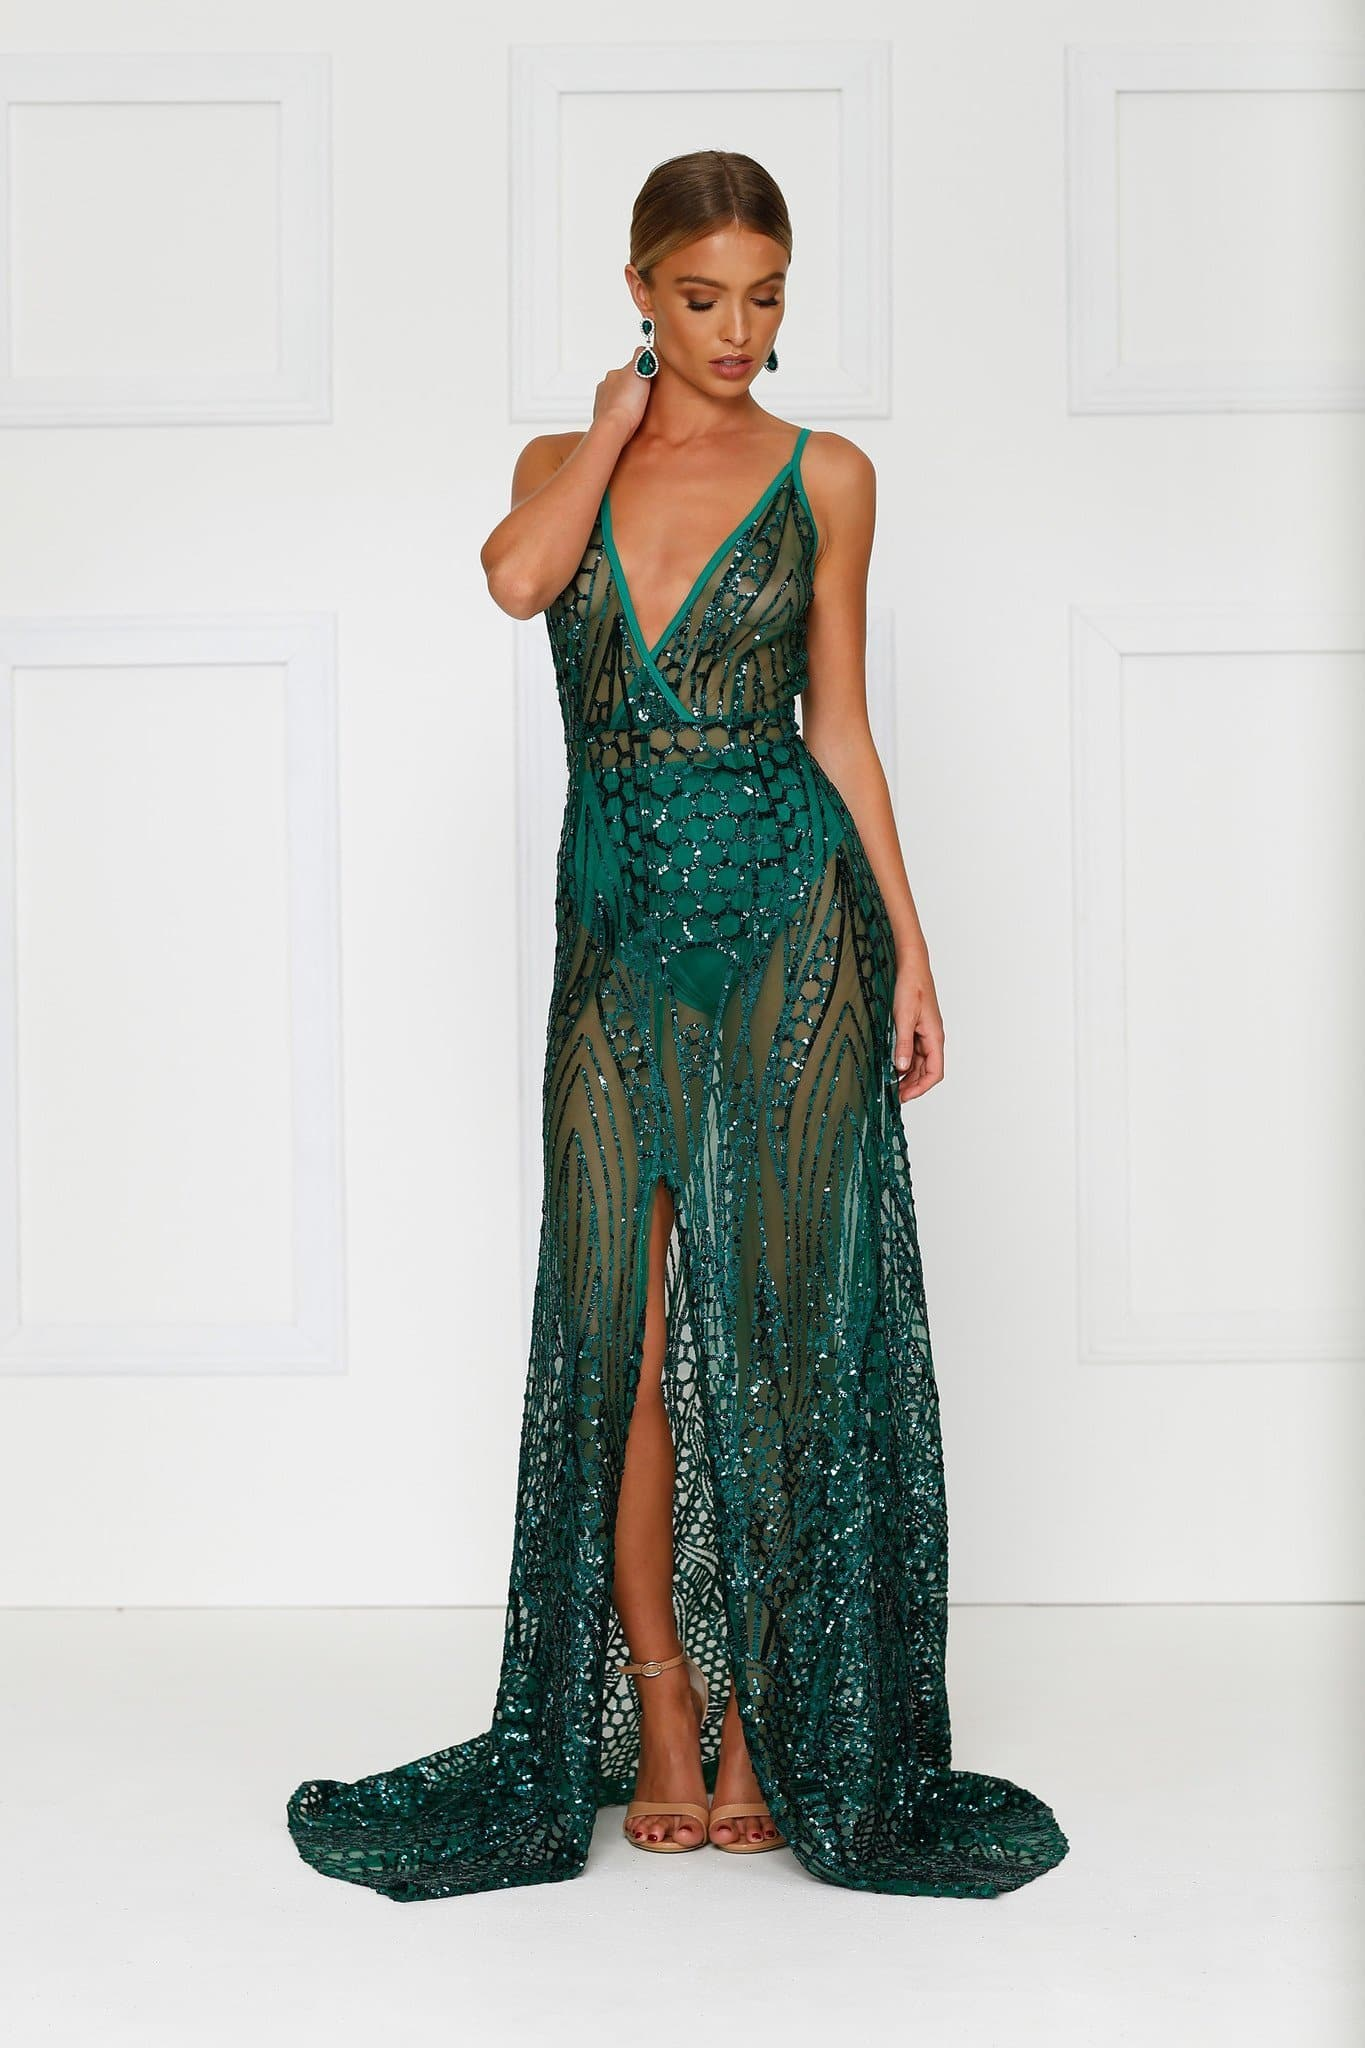 Cristal Gown - Emerald V Neck Dress in Sheer Mesh Fabric with Straps